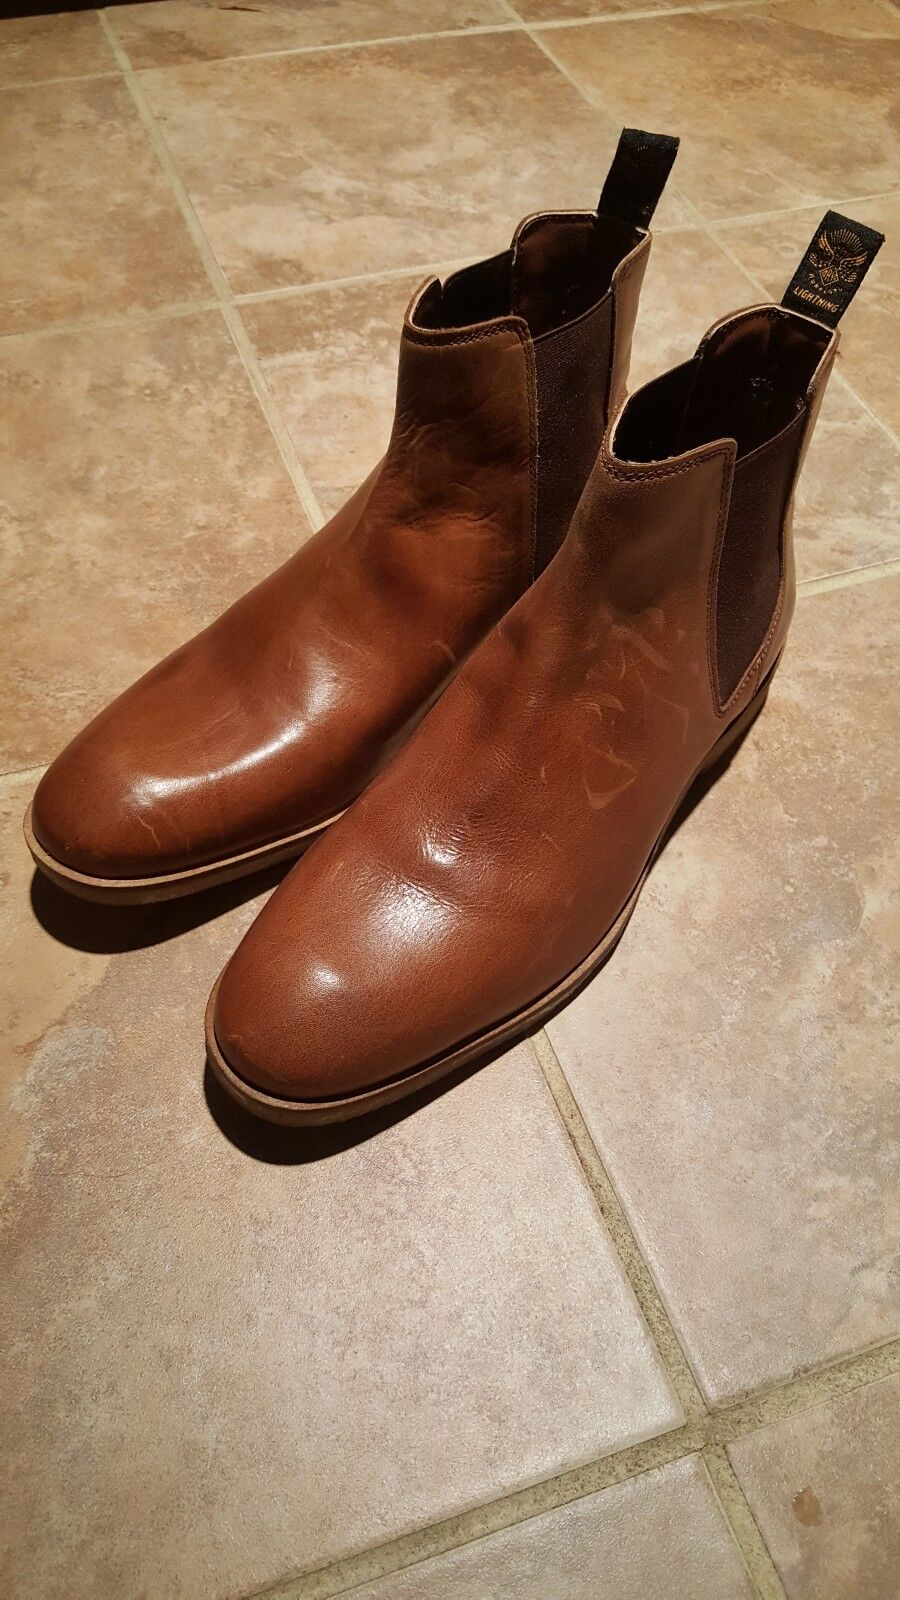 Men SUPERDRY slip On Leather Boots SIZE 11 M NWOB